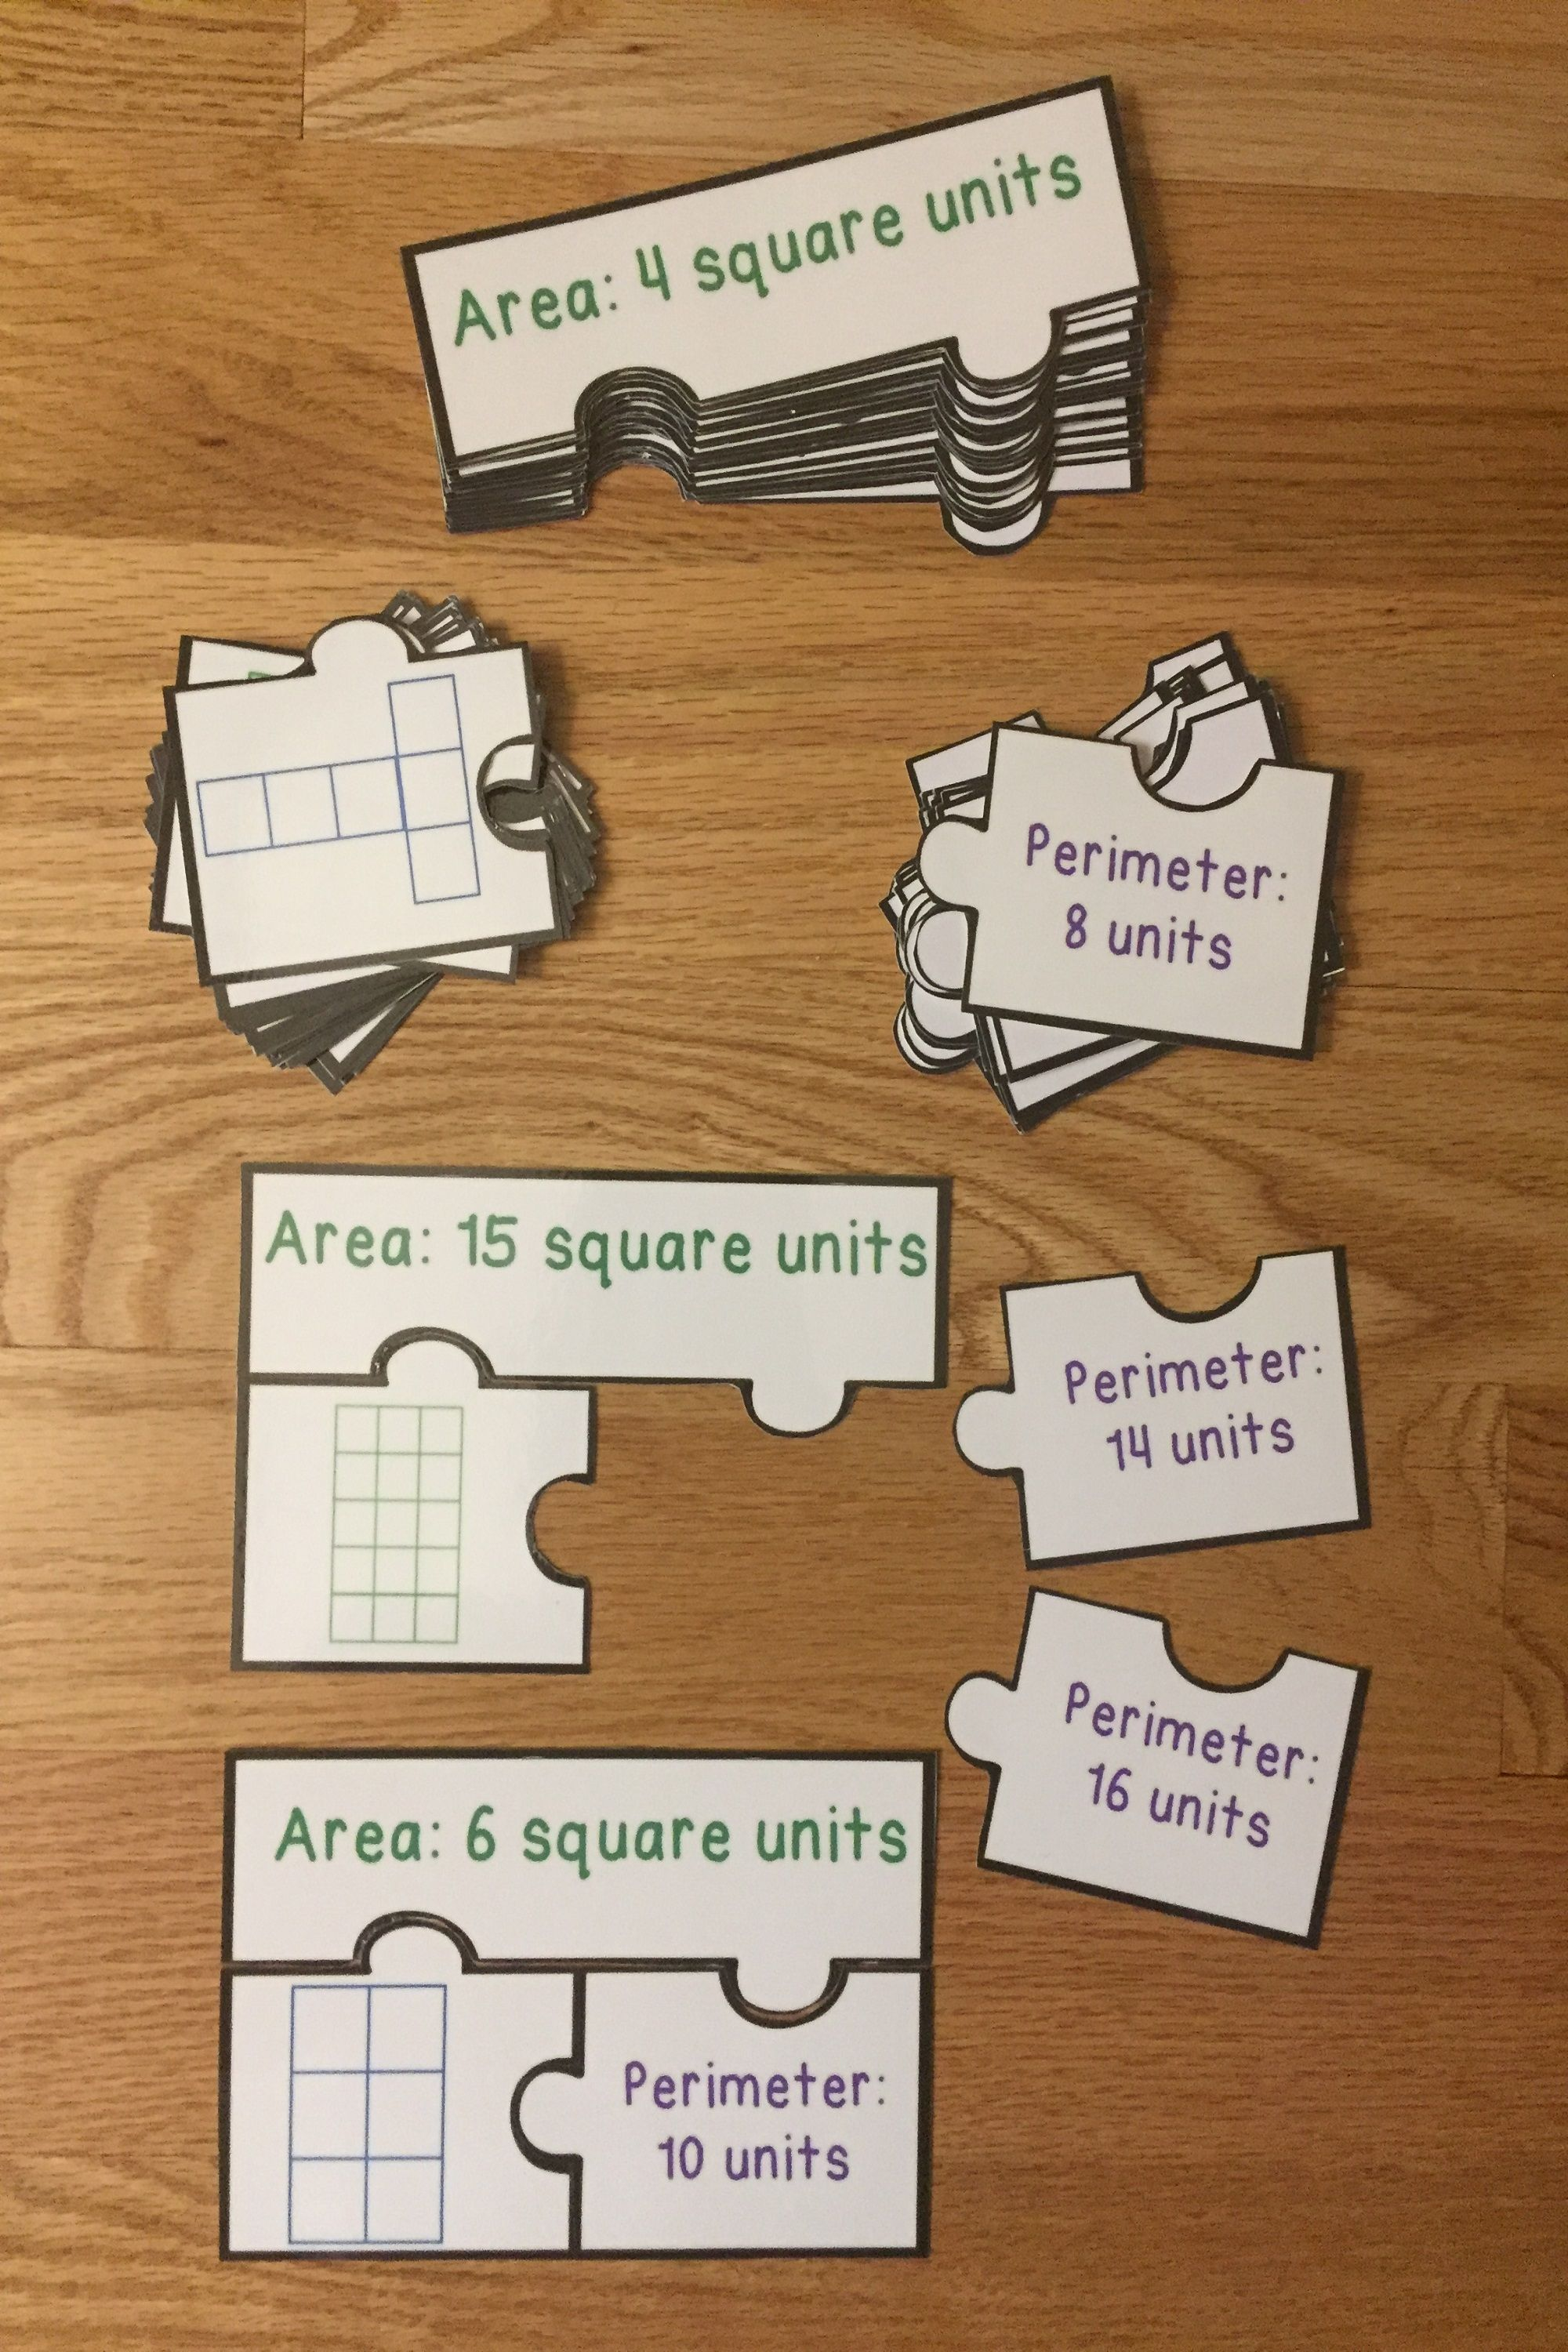 Counting Square Units Area And Perimeter Game Puzzles 3 Md 5 Amp 3 Md 6